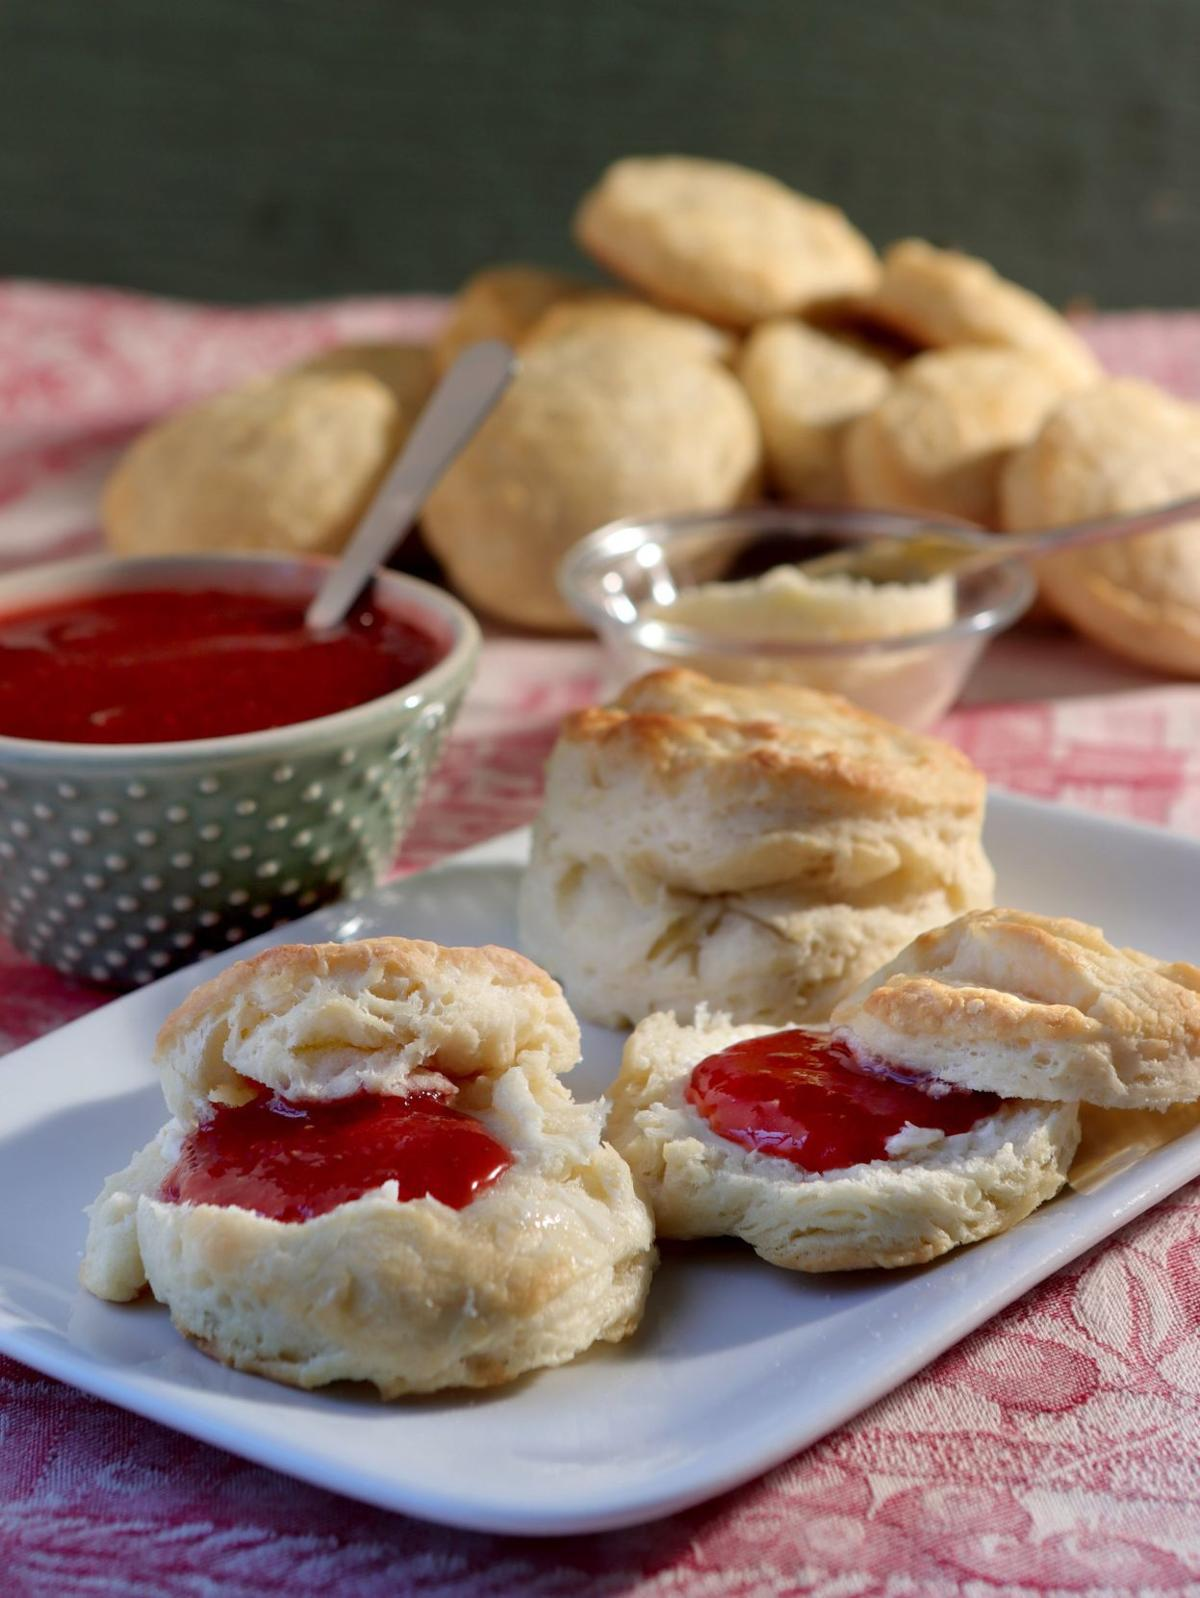 It's the ultimate breakfast treat: homemade biscuits, homemade butter and homemade jam